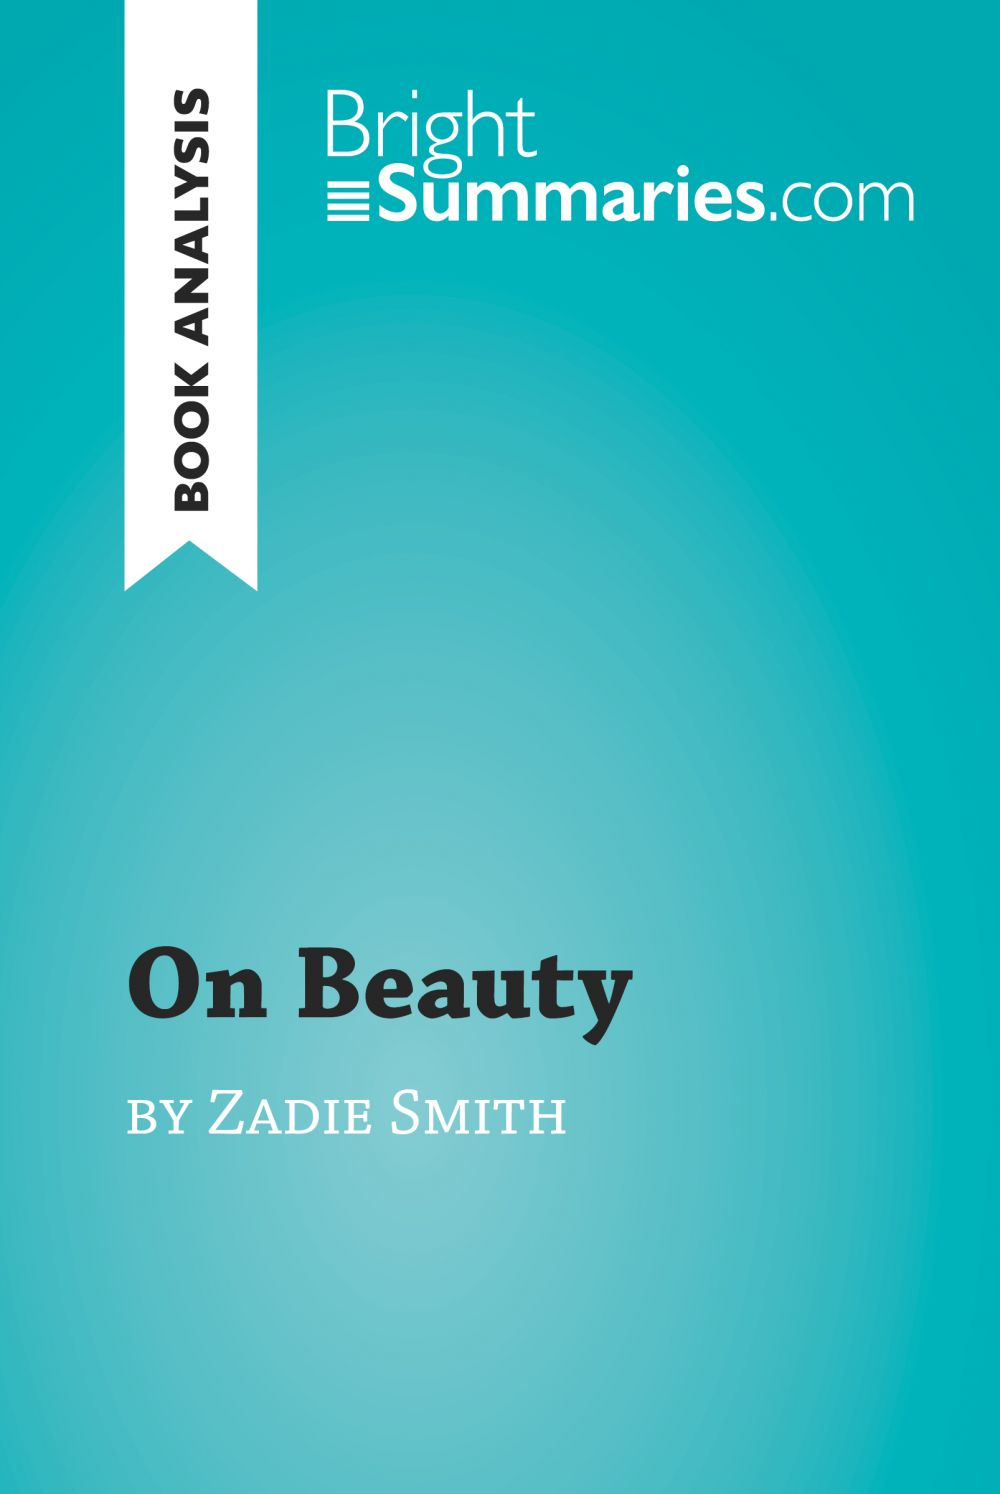 On Beauty by Zadie Smith (Book Analysis)